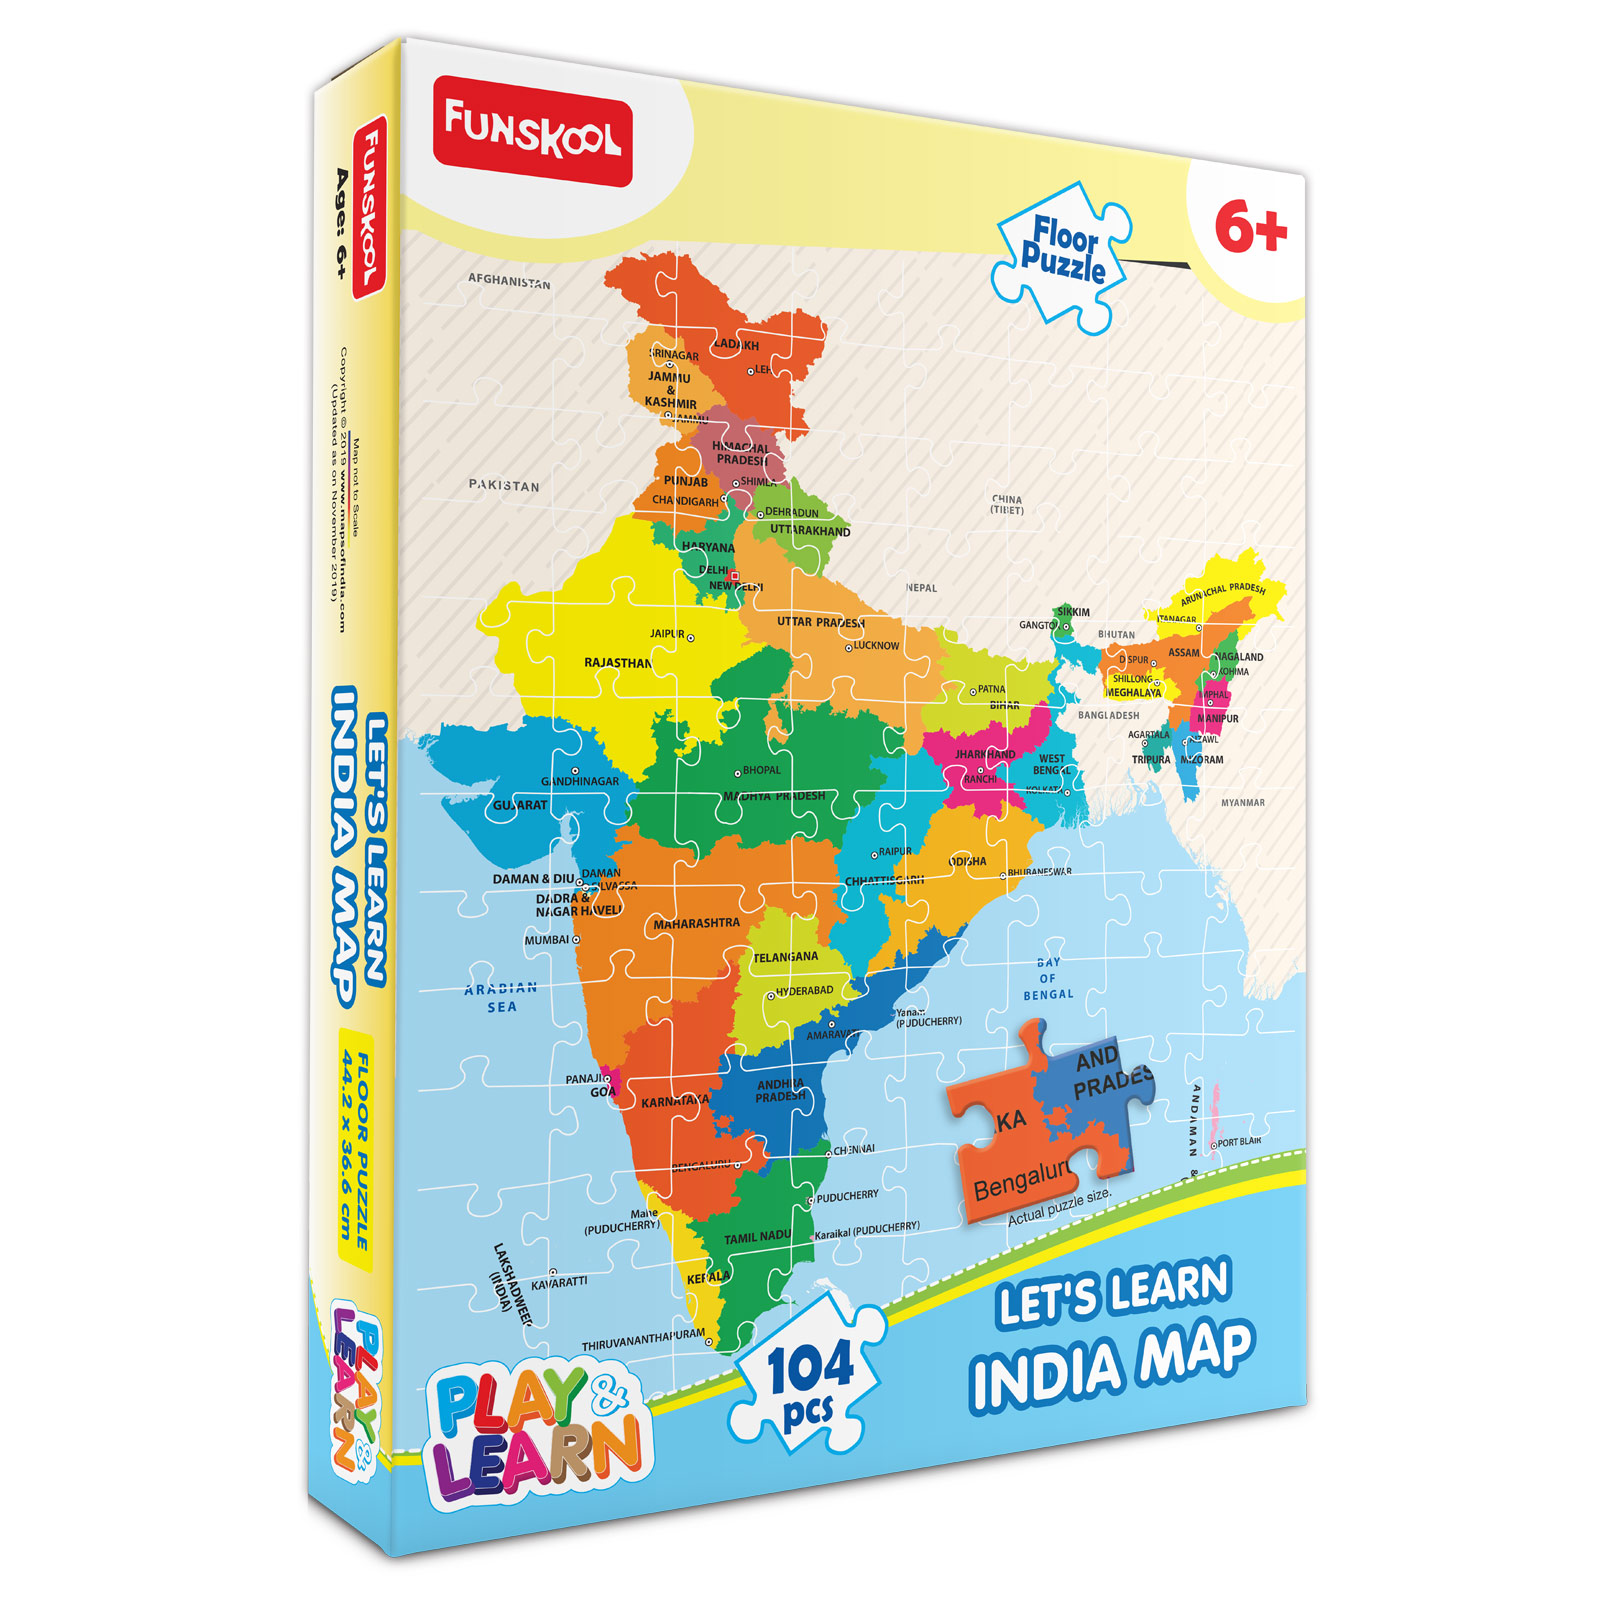 Let's Learn India Map Puzzle